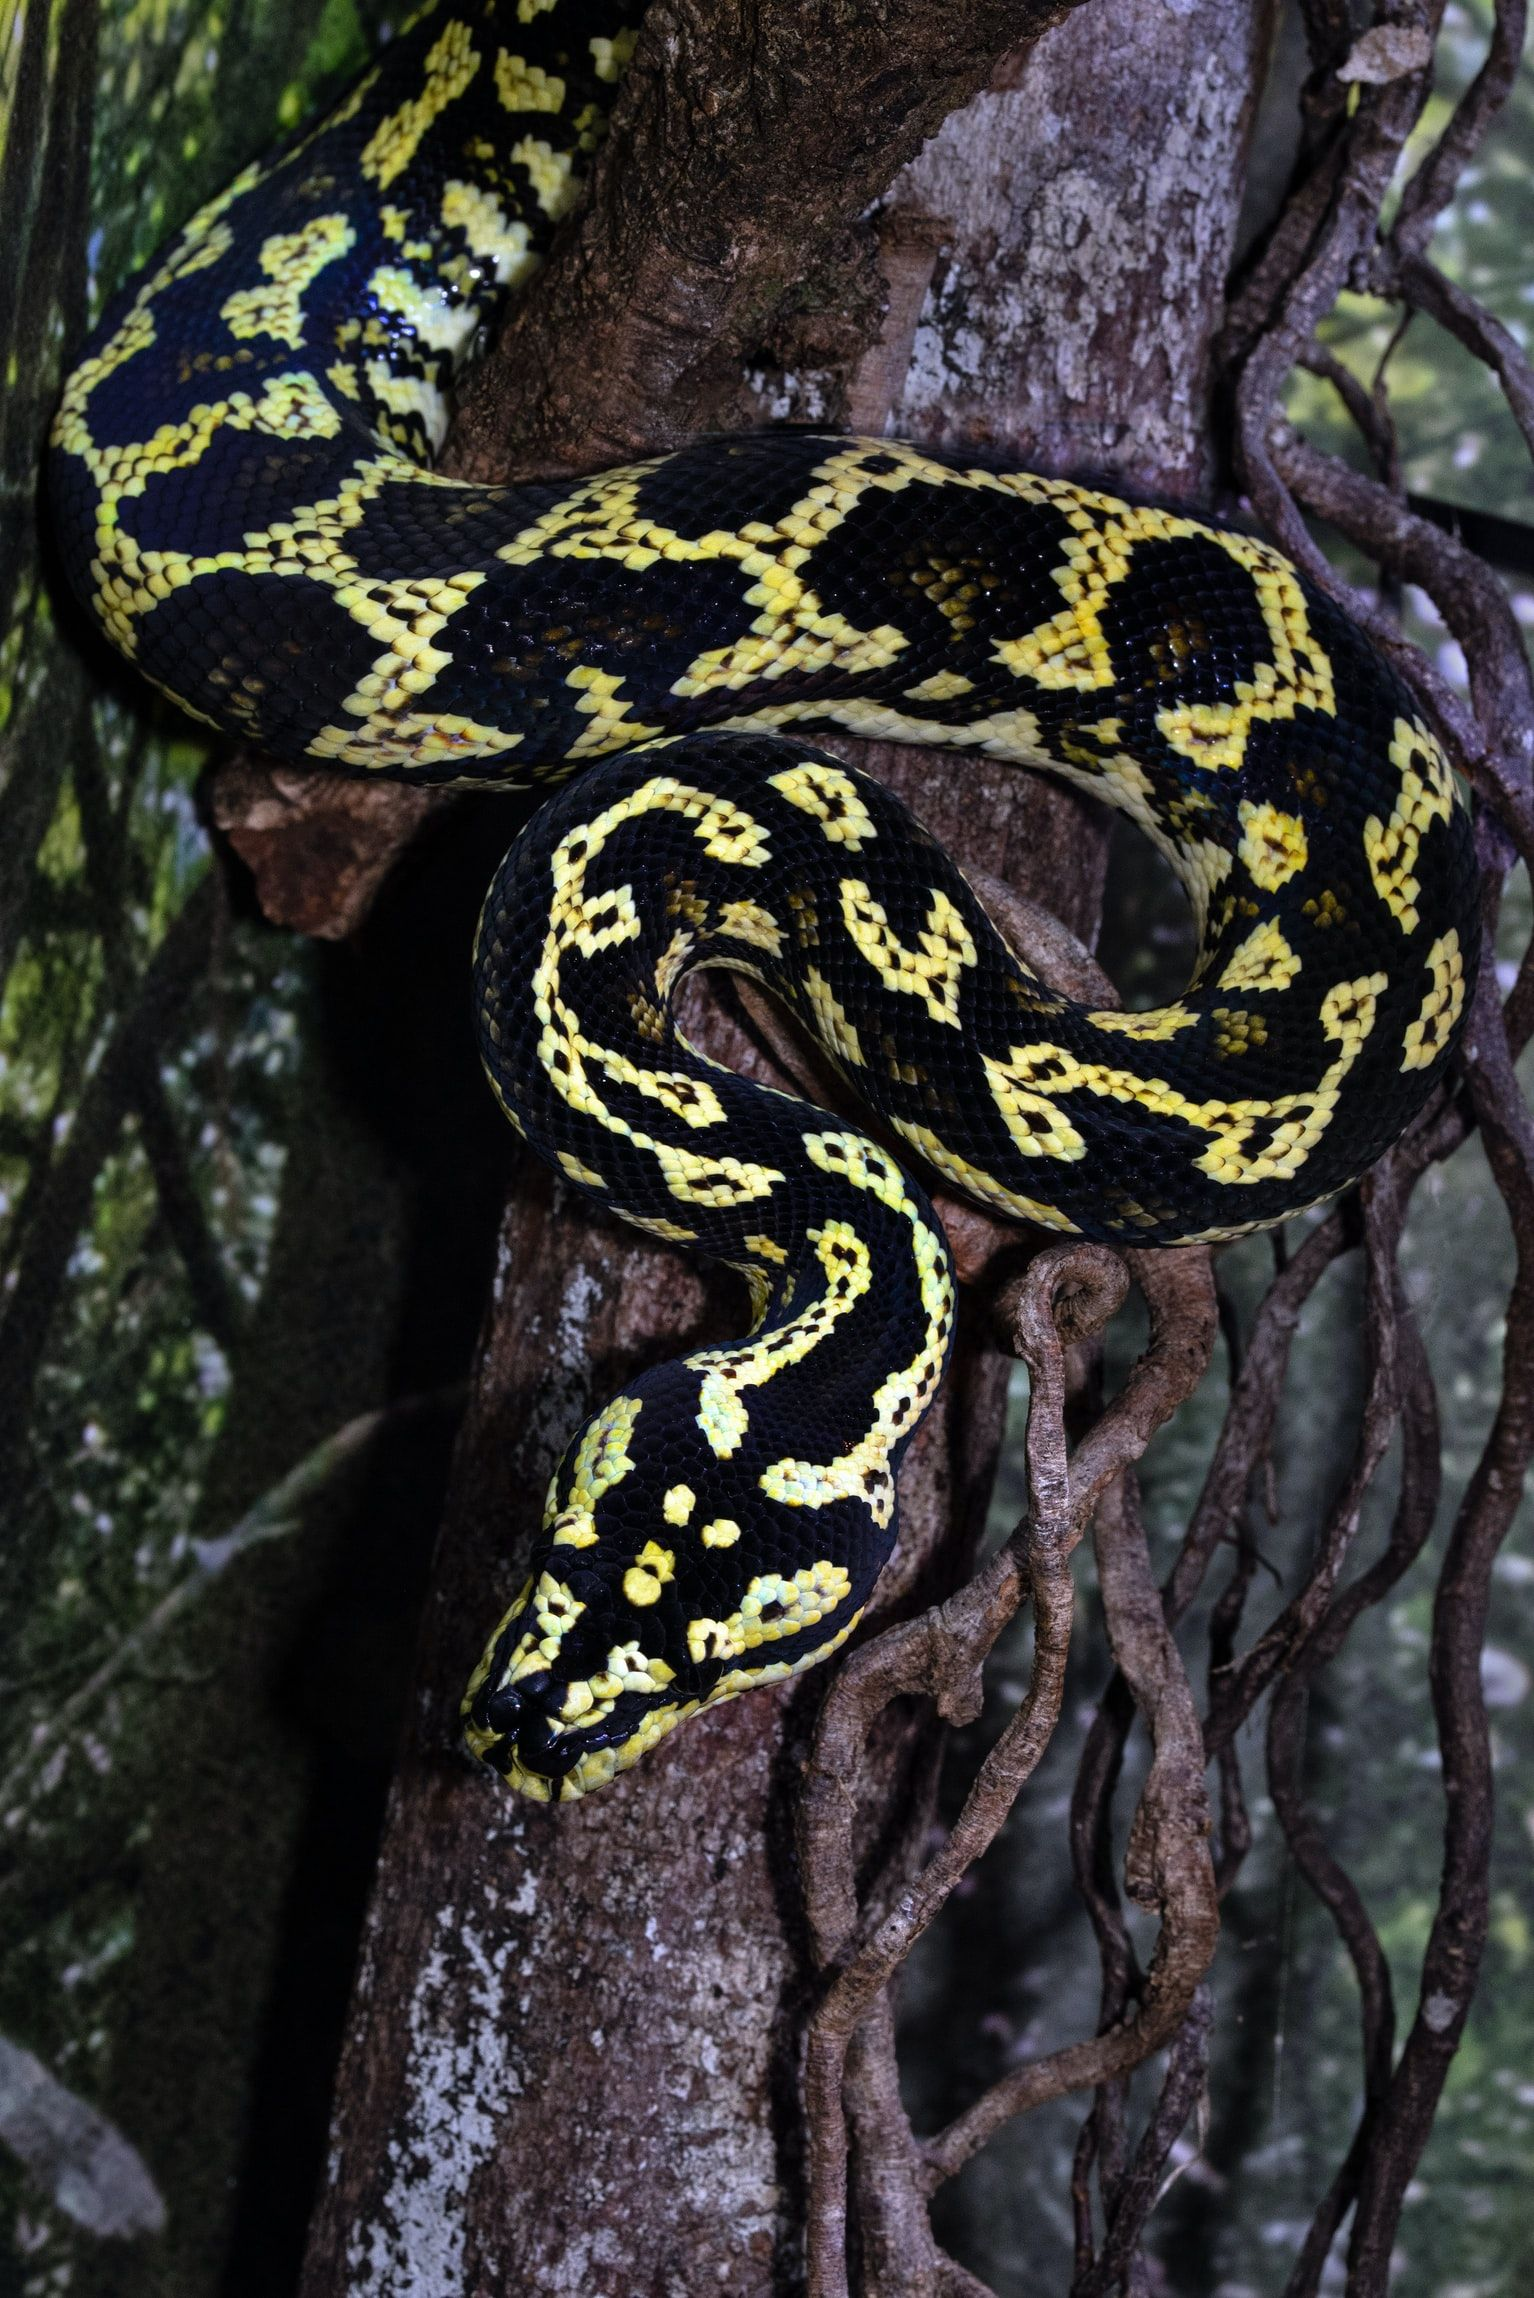 black and yellow snake on brown tree branch photo Free